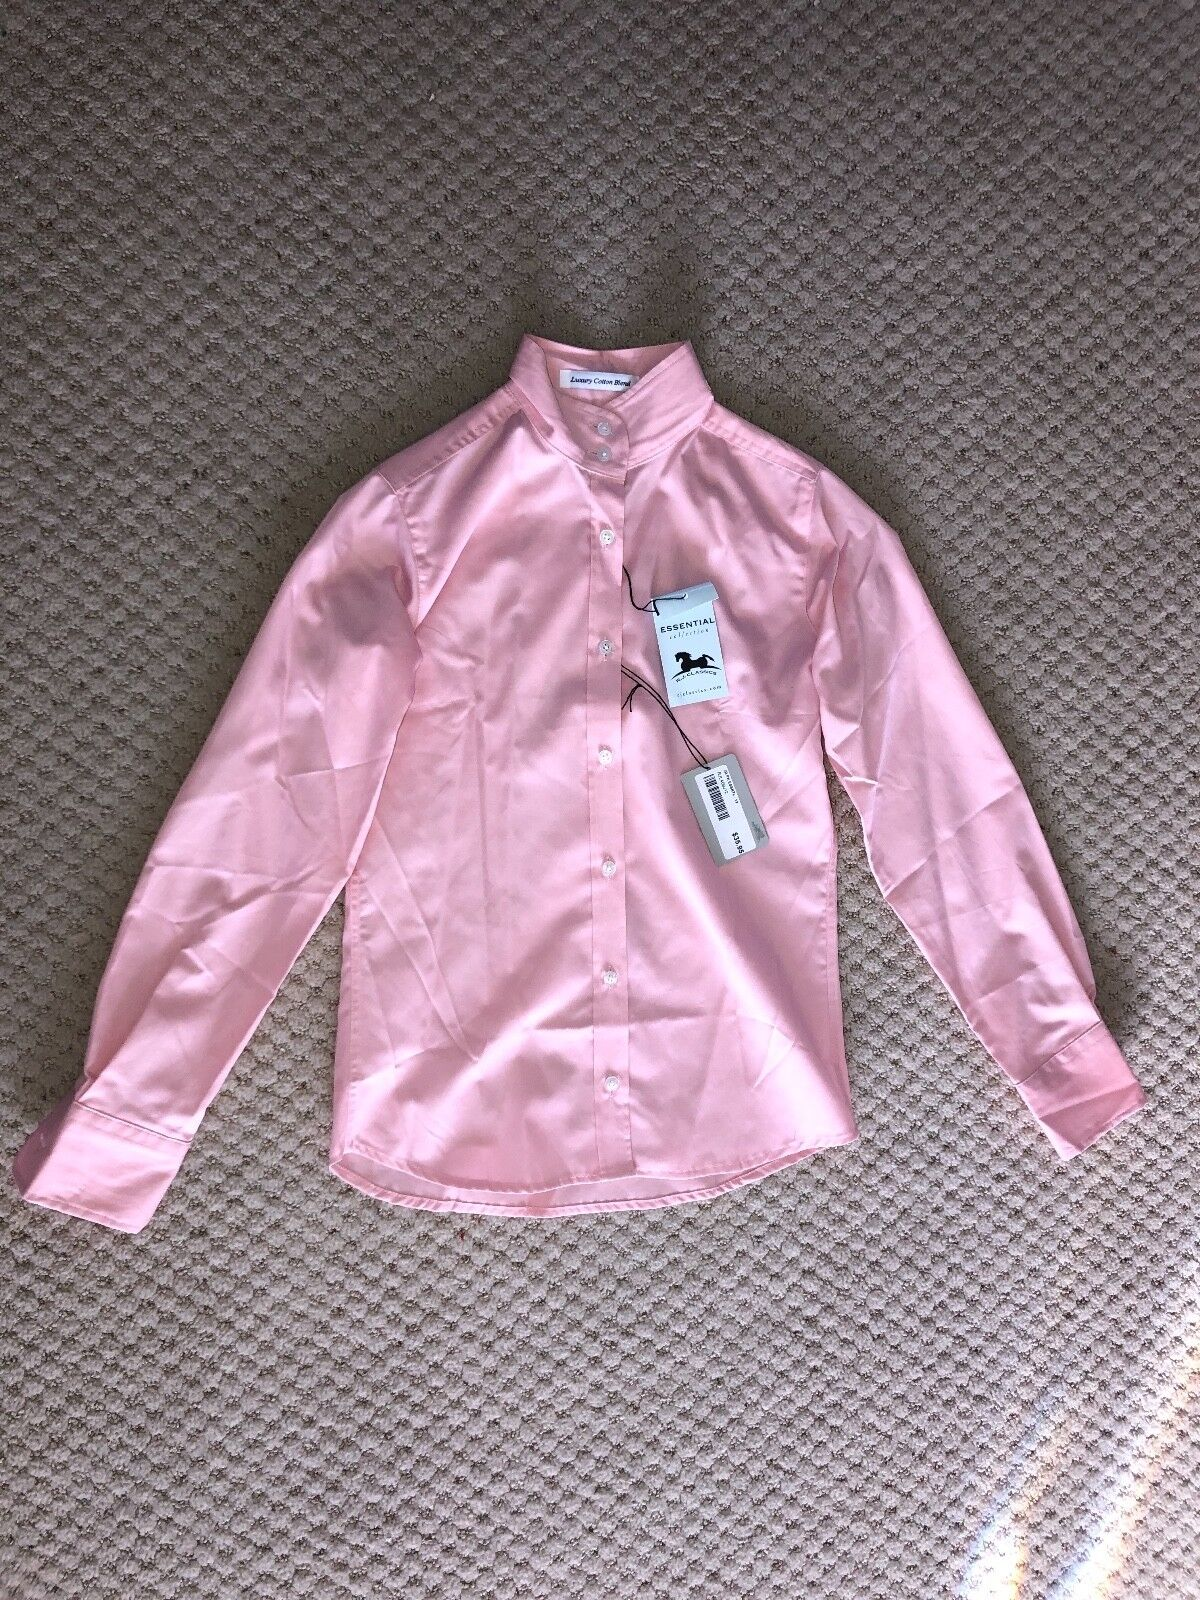 R.J.Classics Essential collection pink show shirt size 12